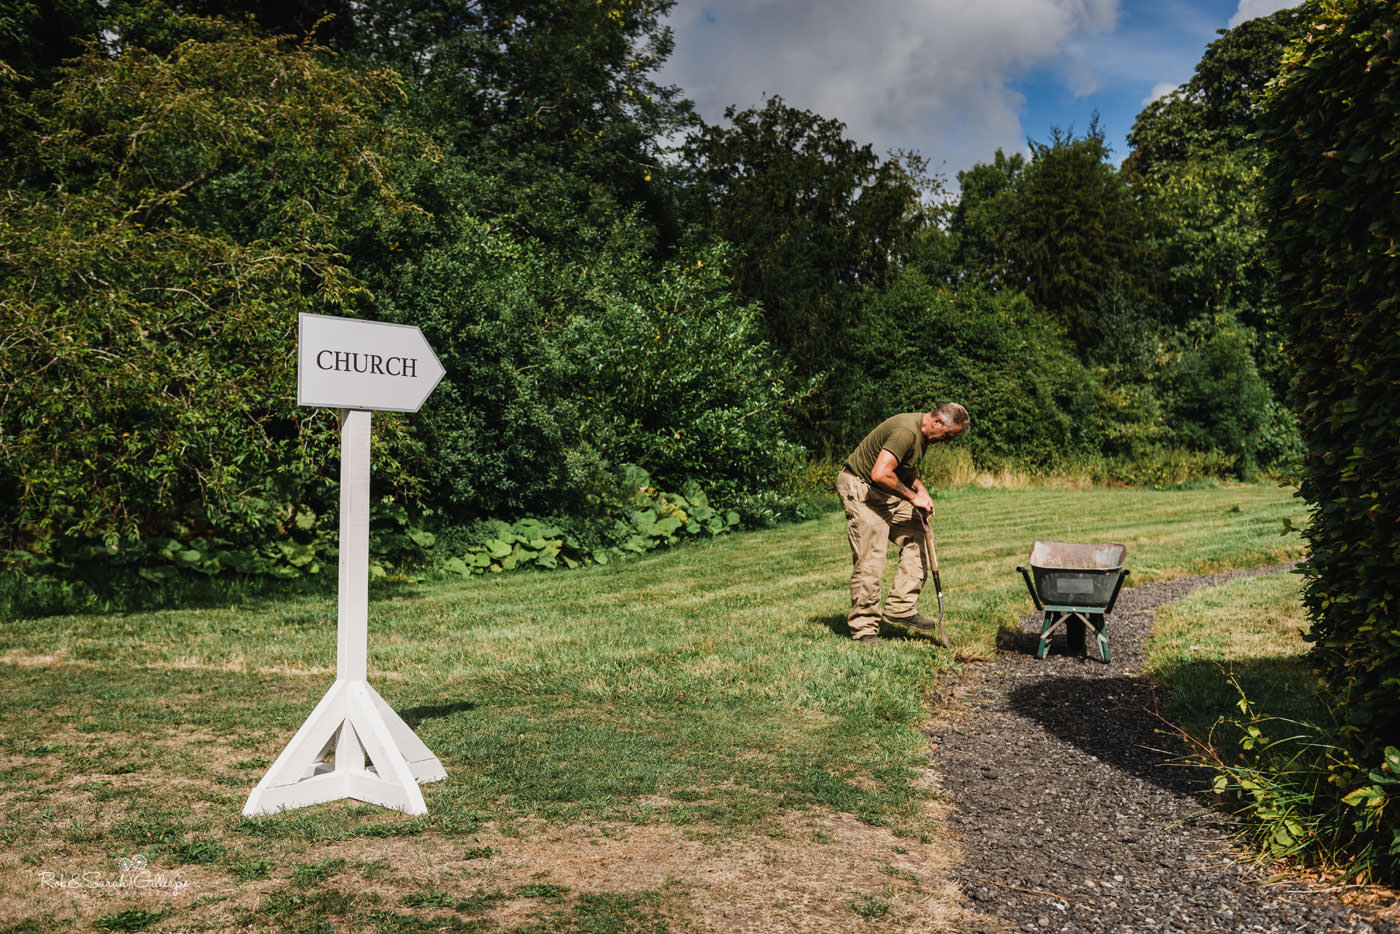 Sign pointing to church at Delbury Hall as gardener works in background